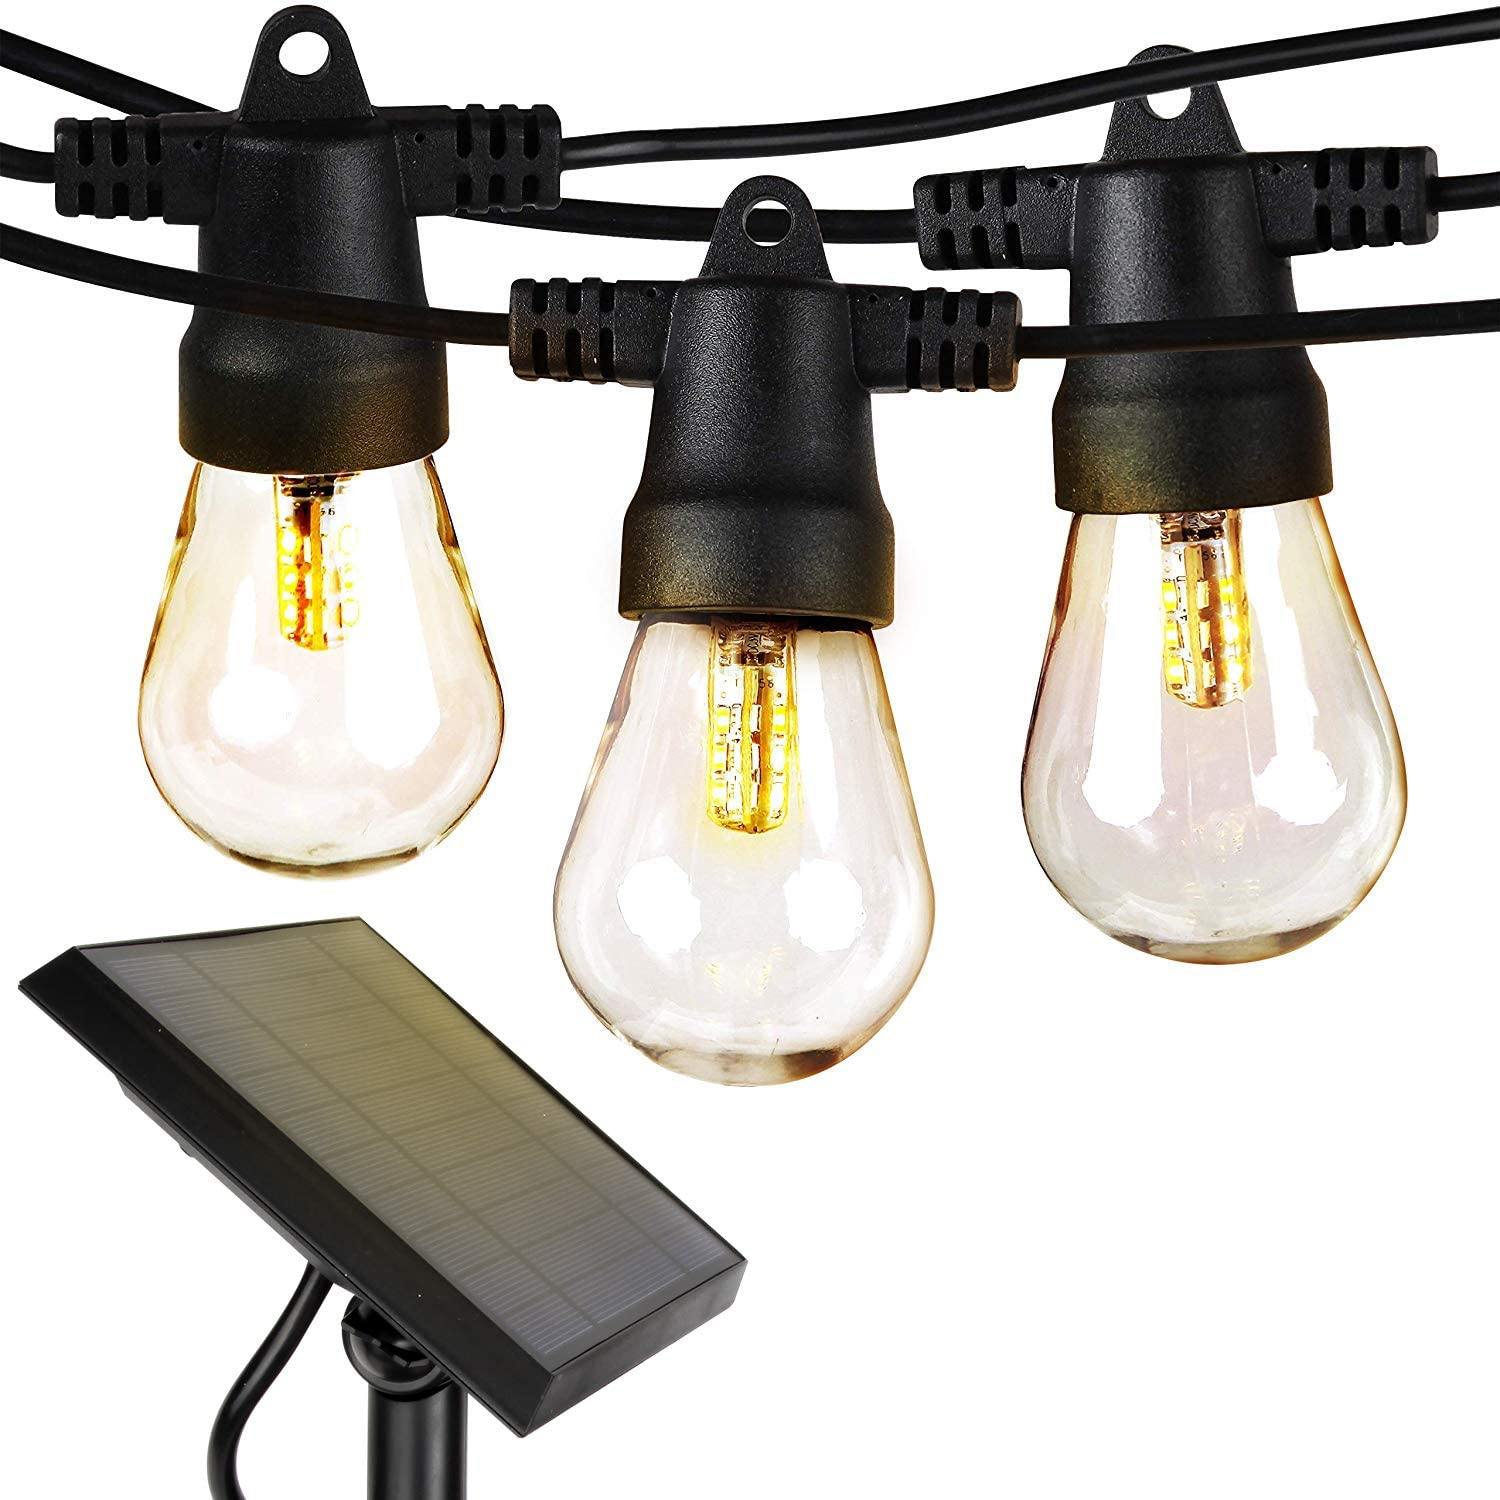 Brighttech Ambience Pro Solar-Powered Outdoor LED String Lights